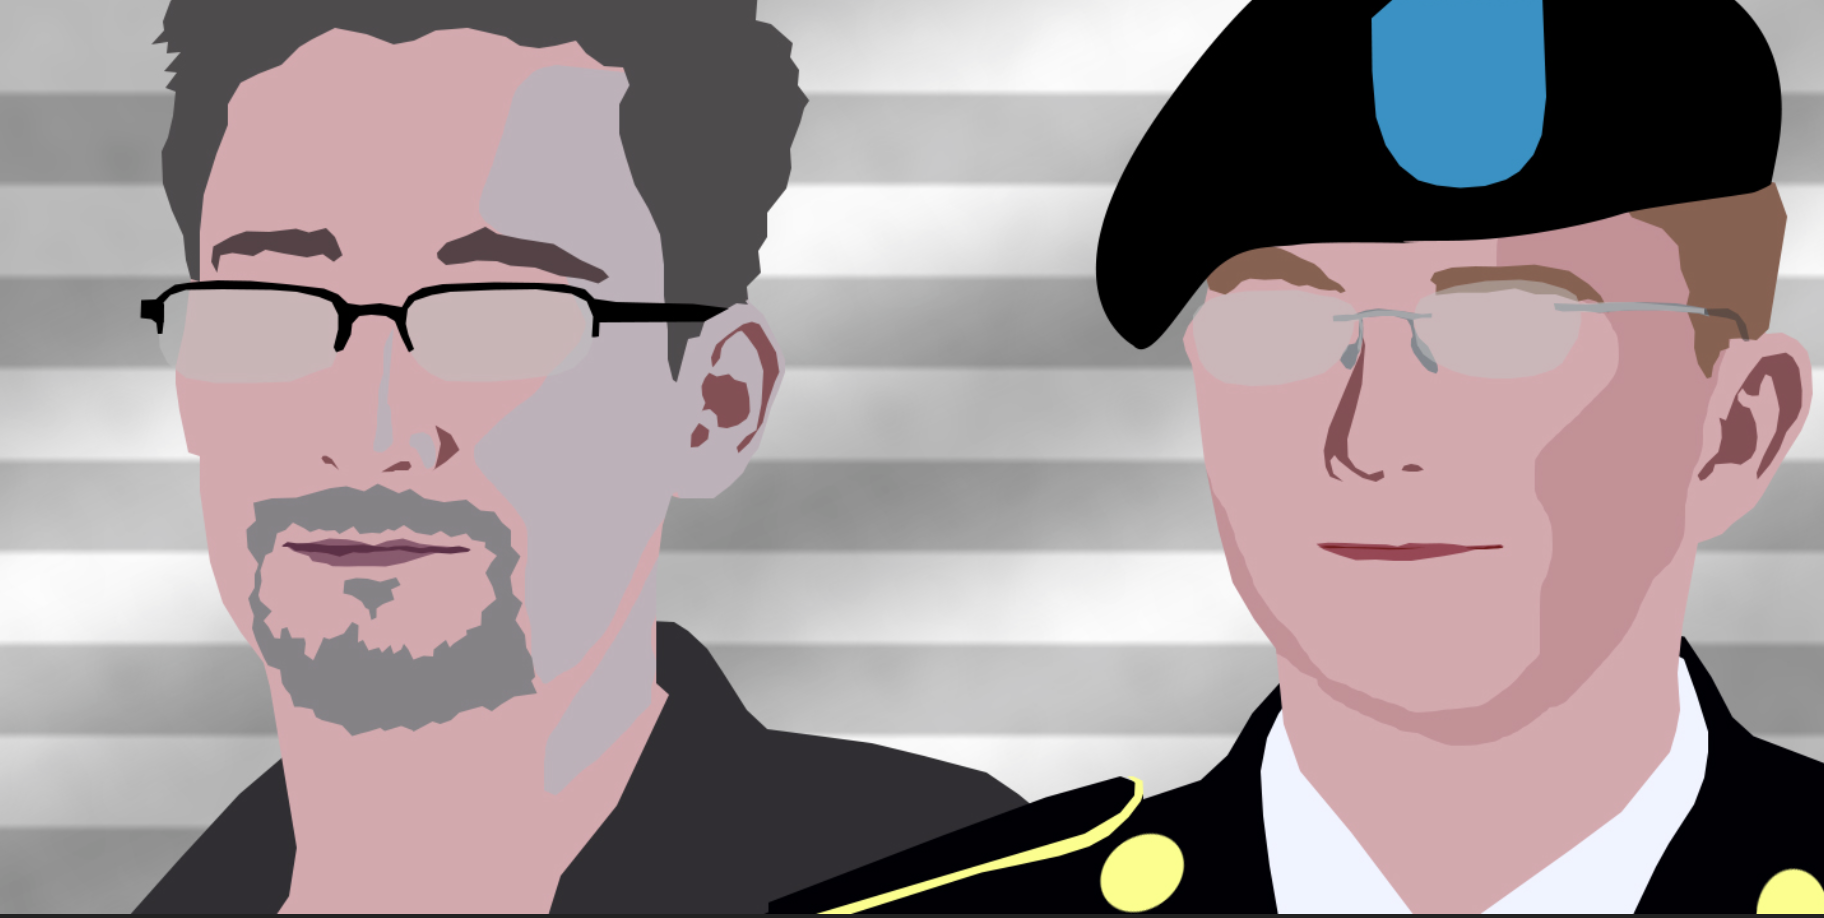 Don't Conflate the Actions of Manning and Snowden